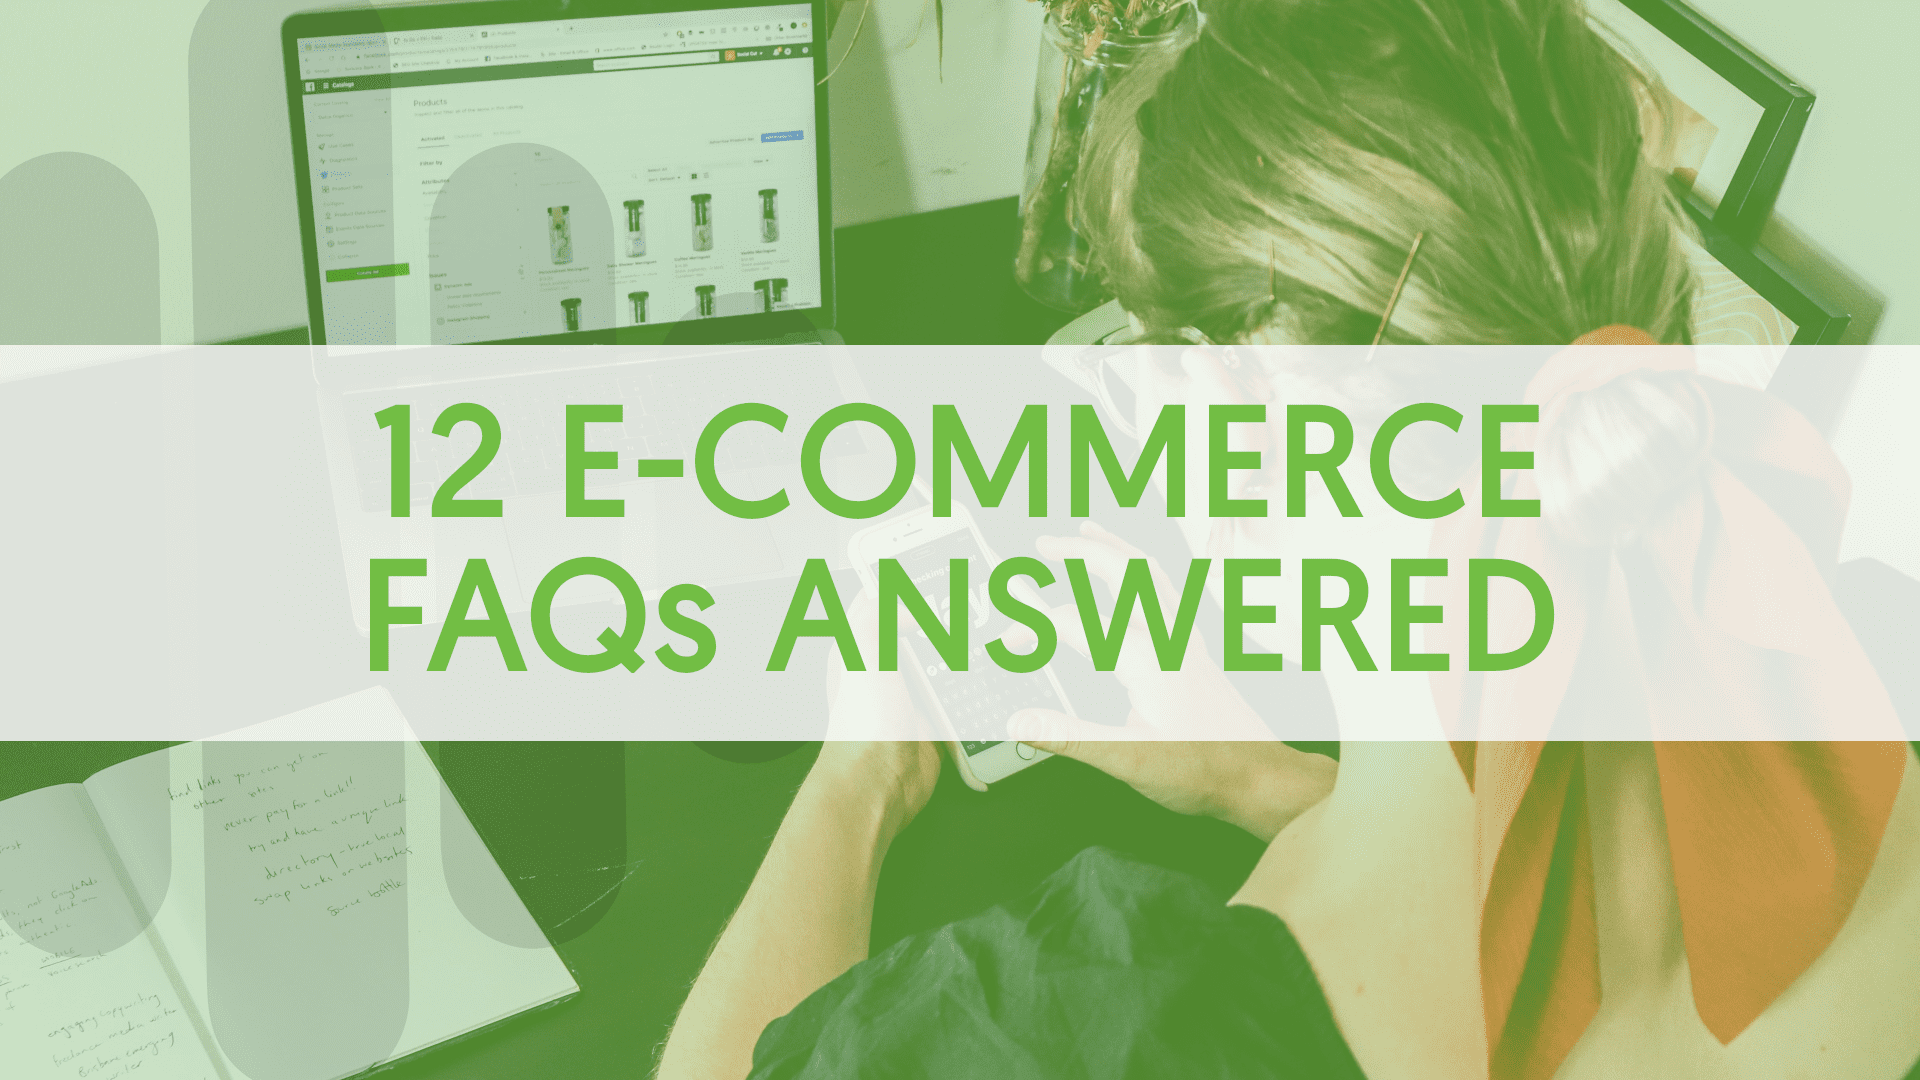 12 Frequently Asked Questions About E-Commerce Answered